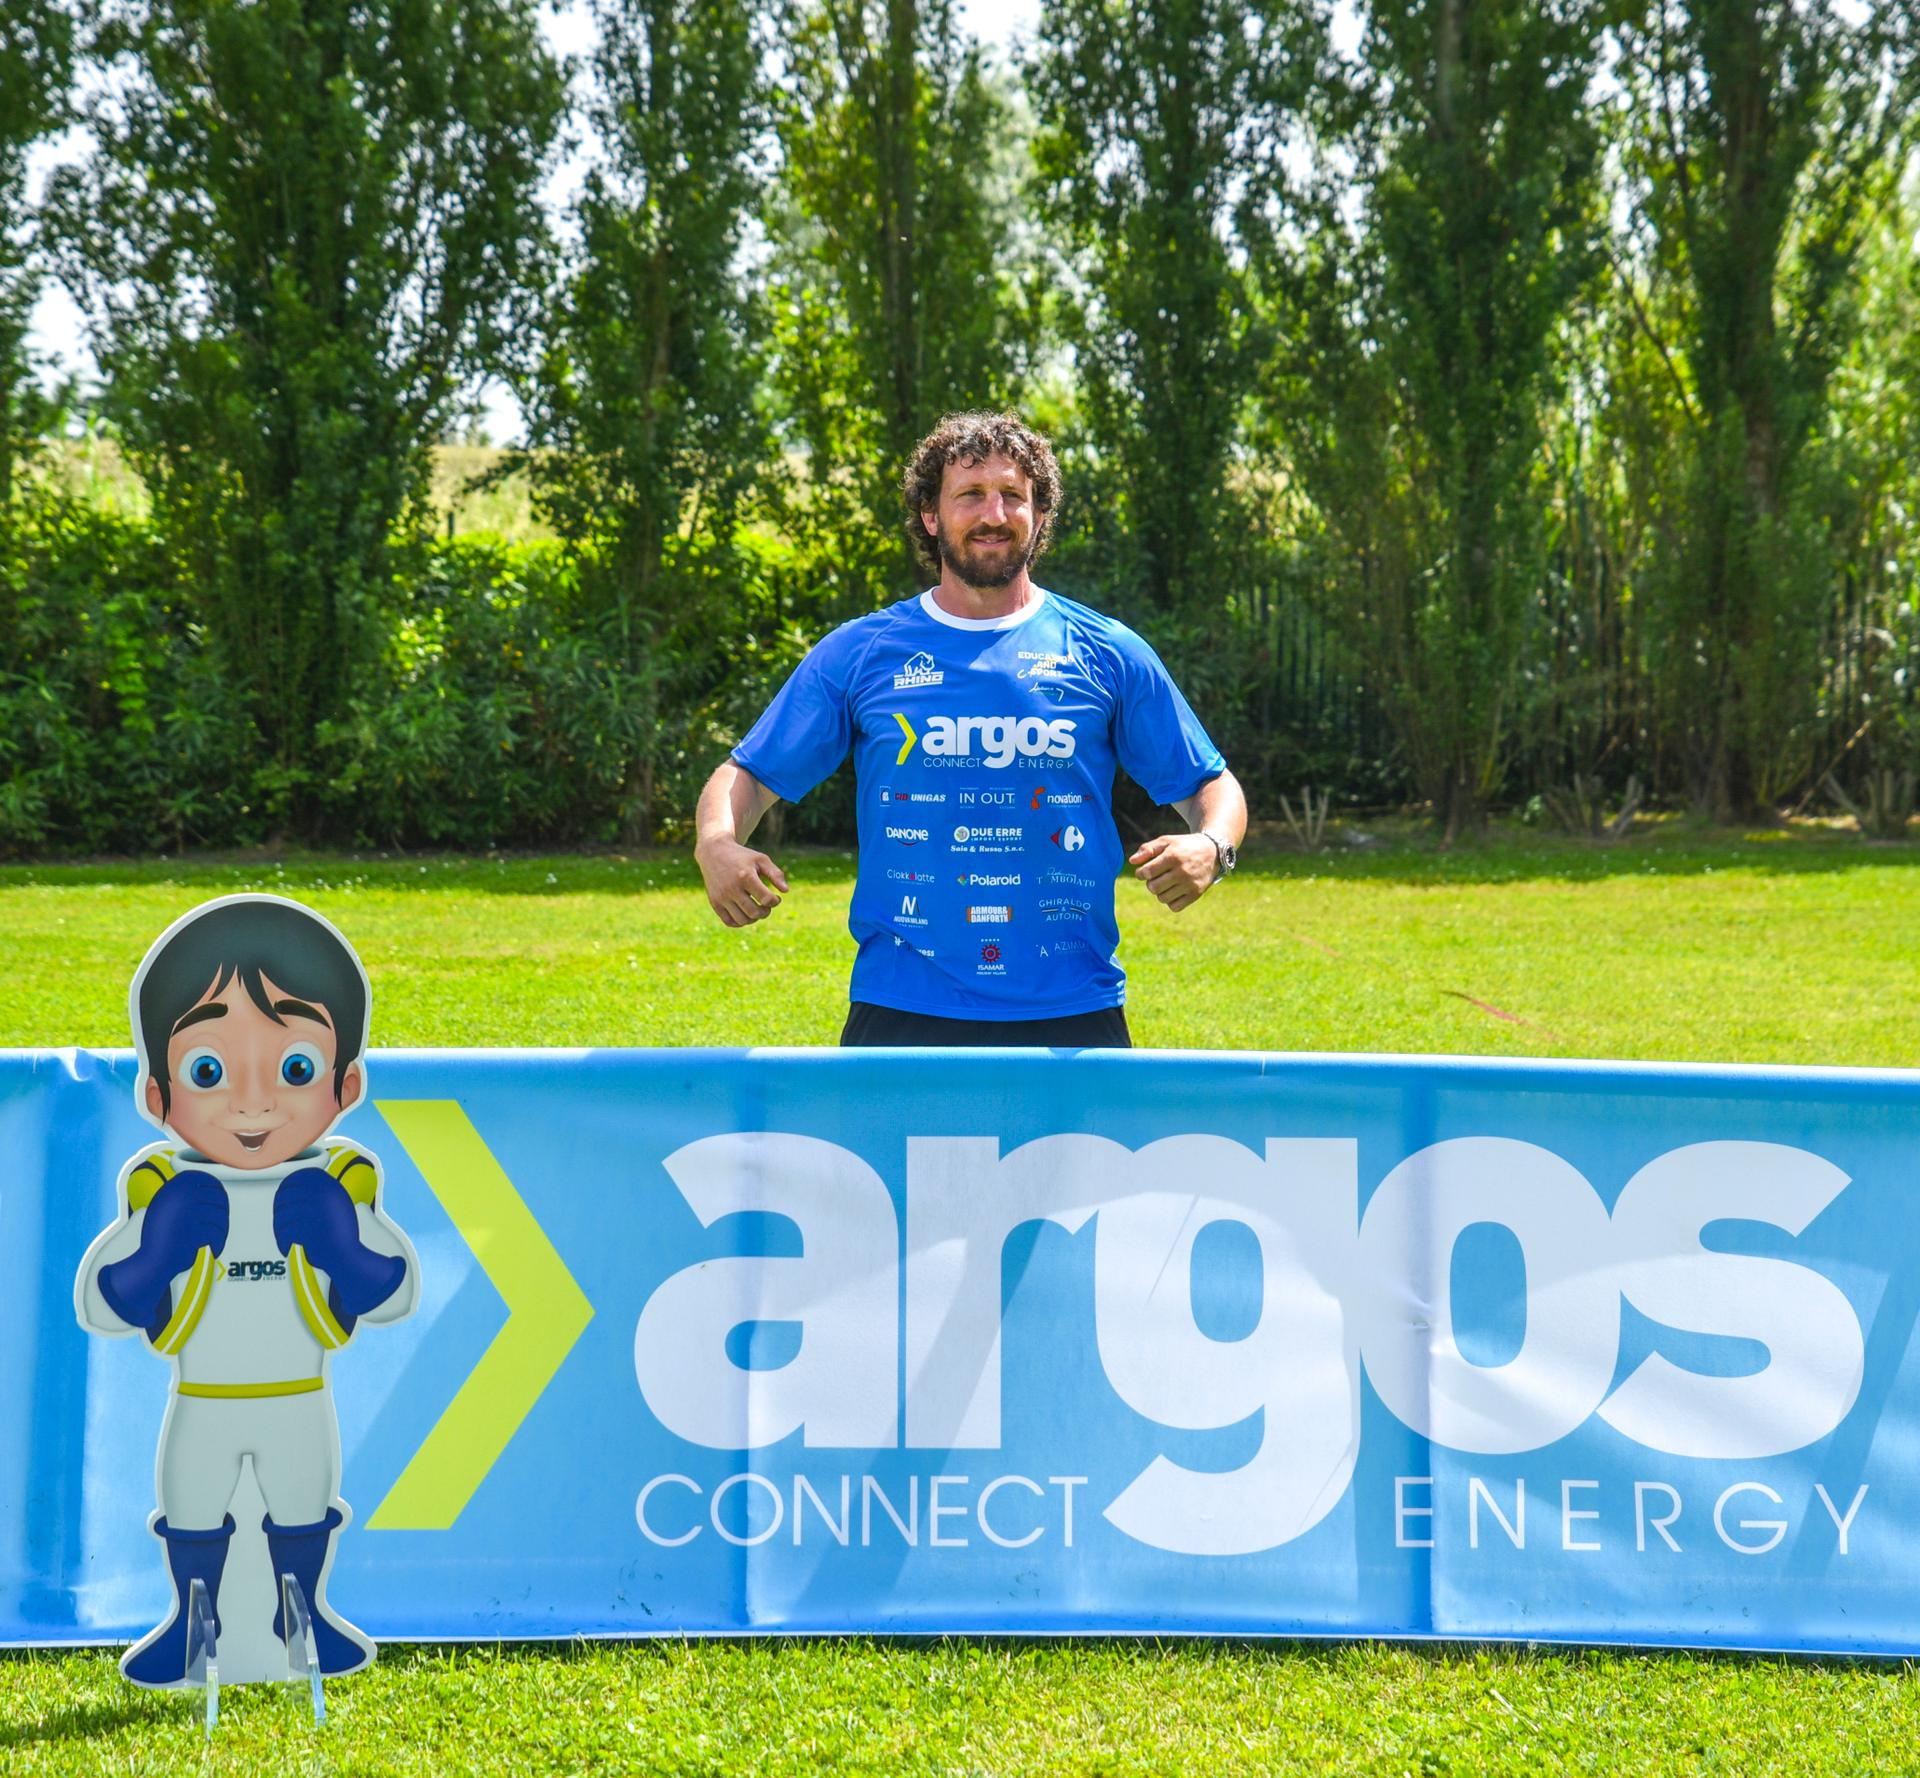 Campus Rugby Mauro Bergamasco 2